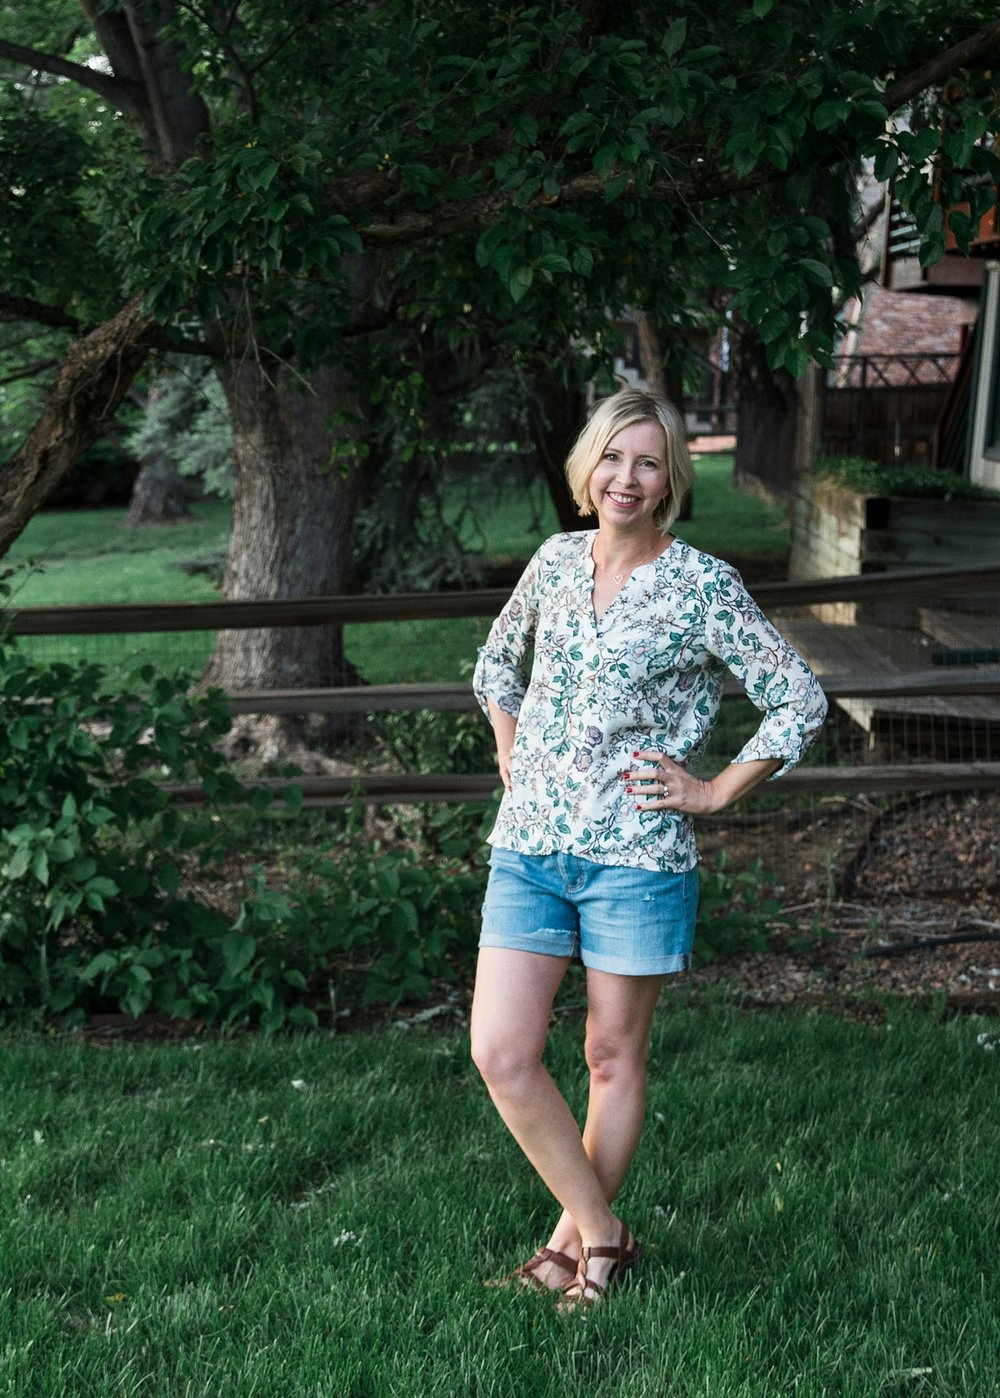 Baggy denim shorts, a feminine top, and comfy sandals is an easy summer outfit for women over 40.